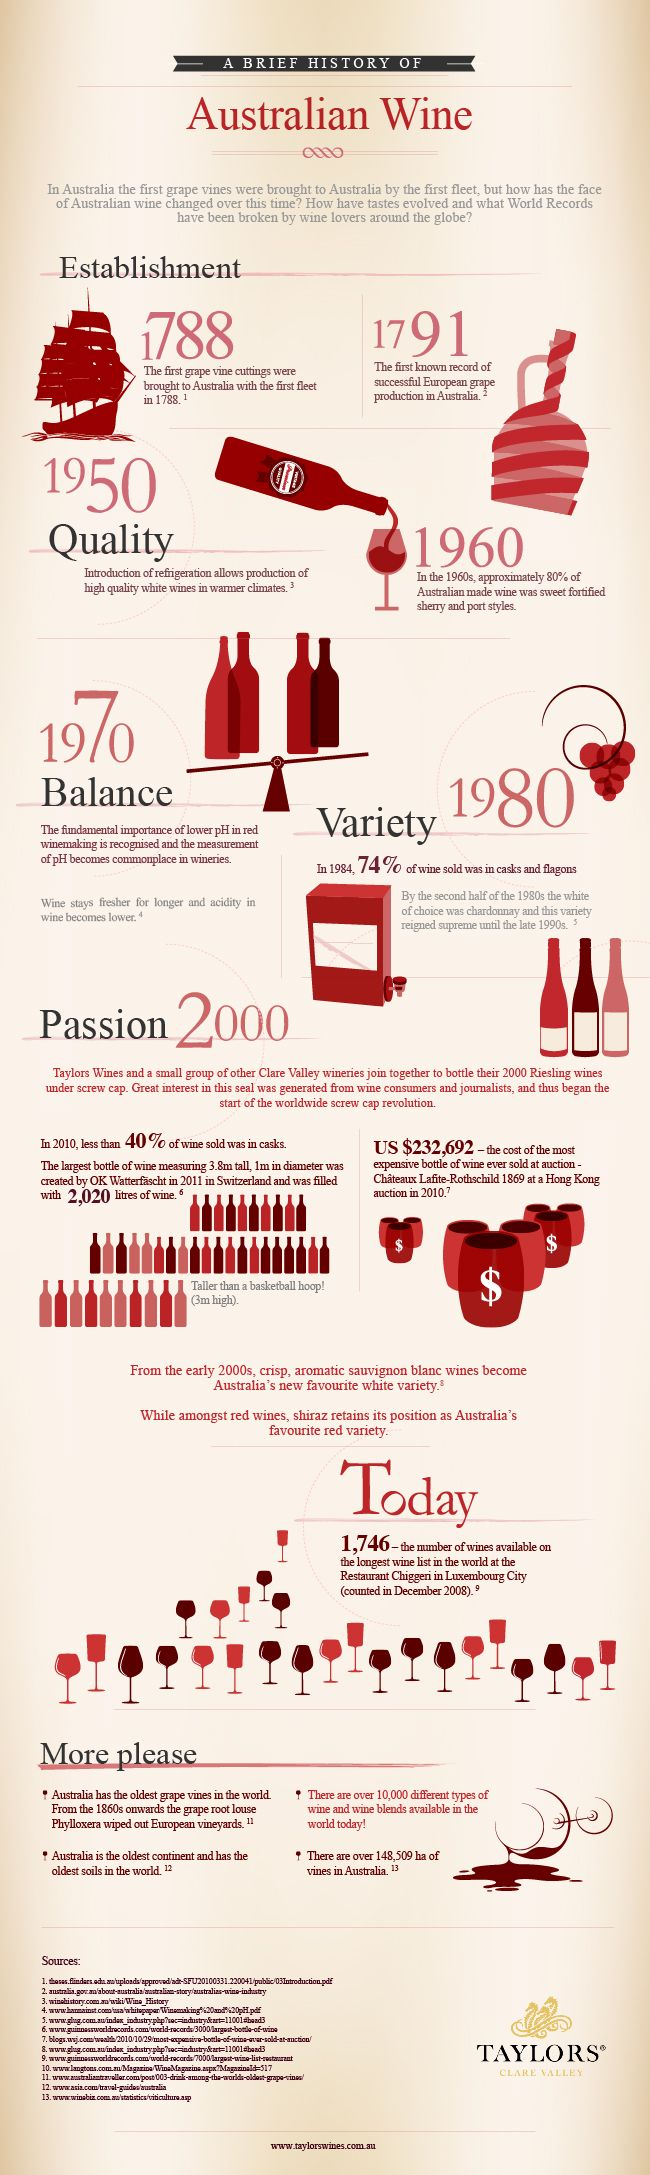 The History of Australian Wine Production [infographic] | Infographic Heaven